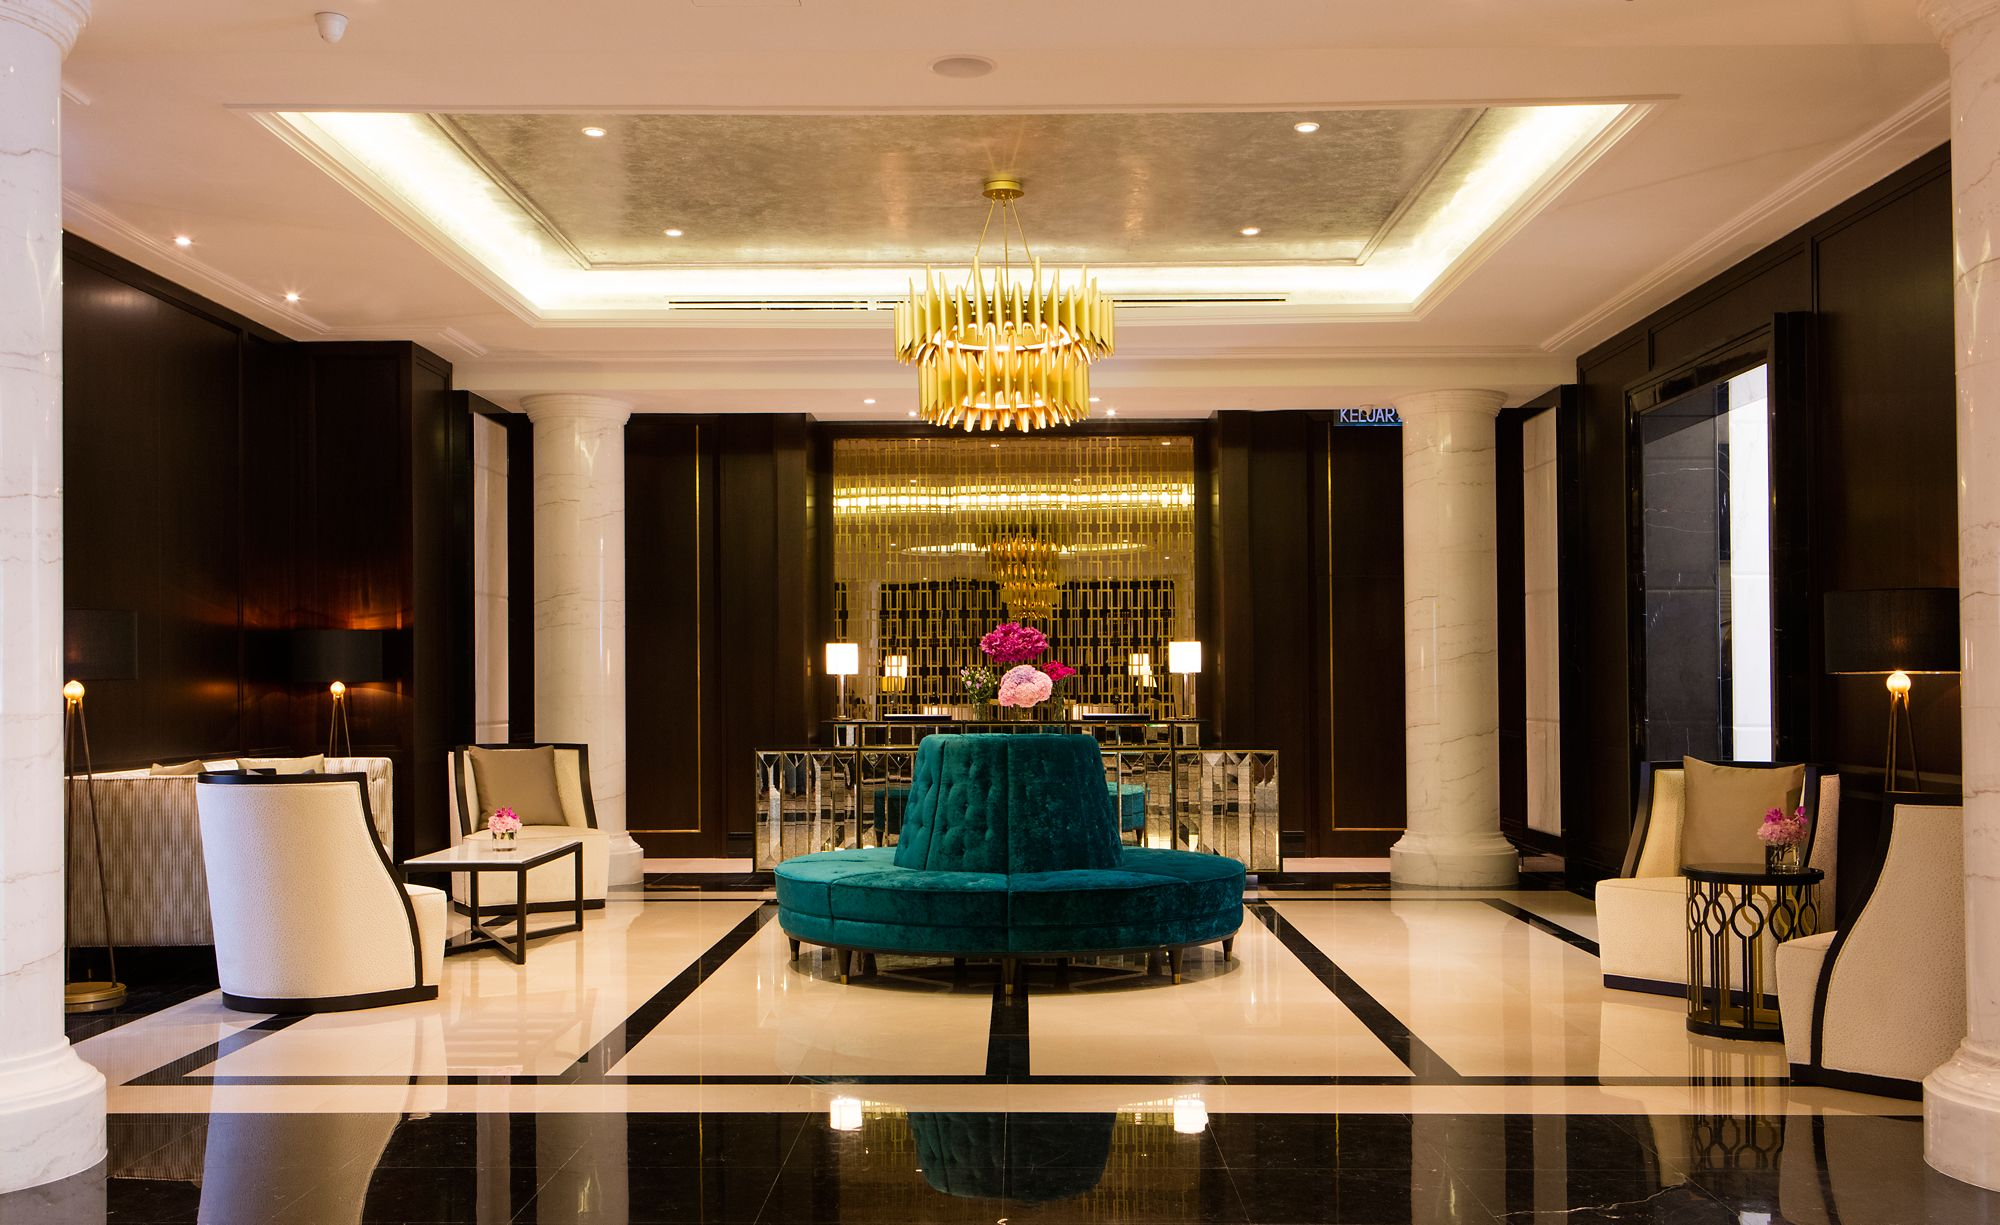 Symmetrical lobby with white marble columns, dark wood wall paneling, a rotund turquoise bench and other seating